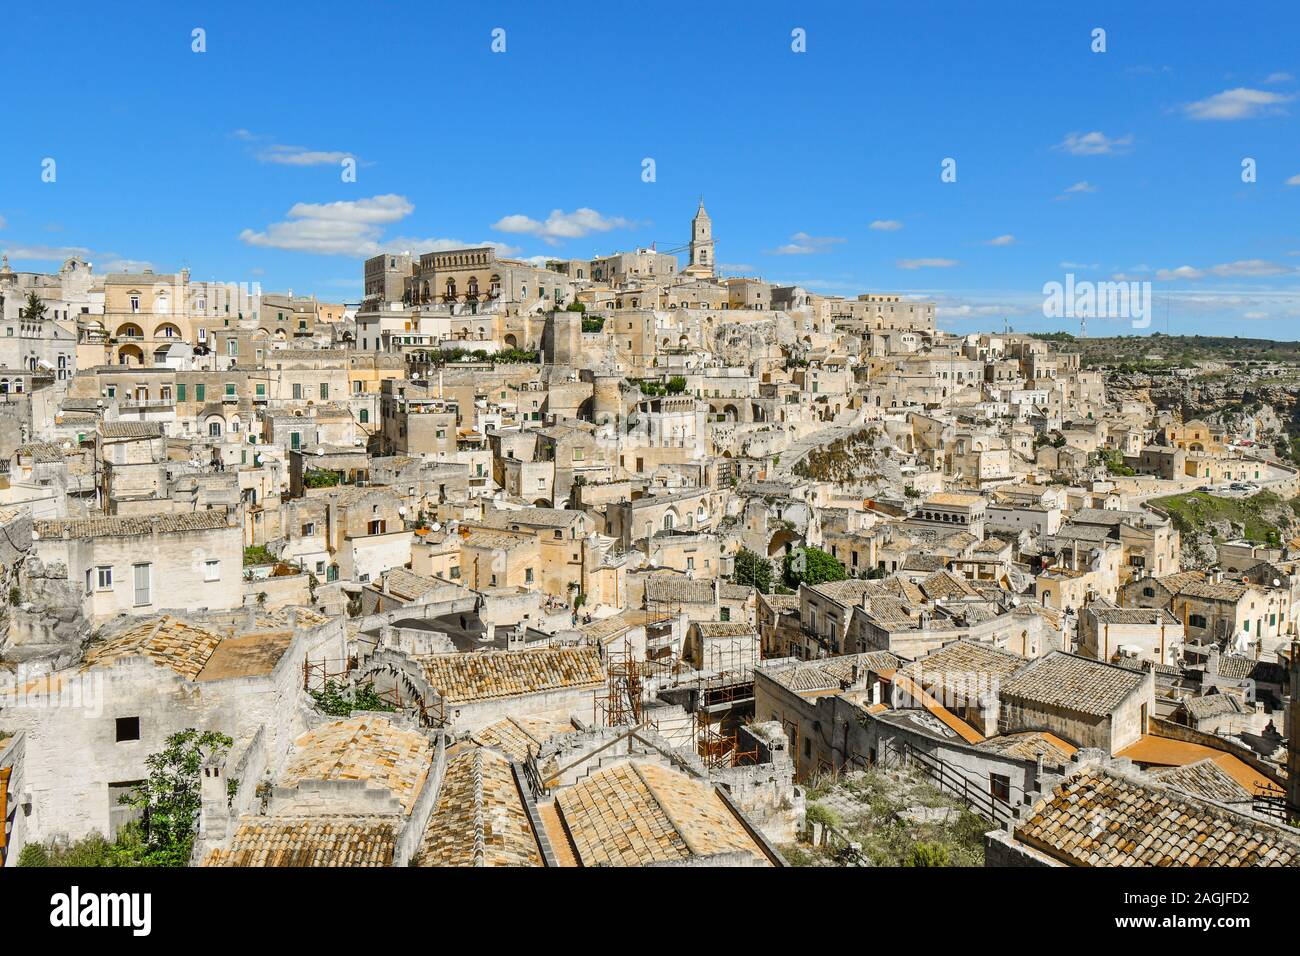 View of the ancient skyline and village of Matera, Italy, including the Matera Cathedral, in the Basilicata region of Italy. Stock Photo